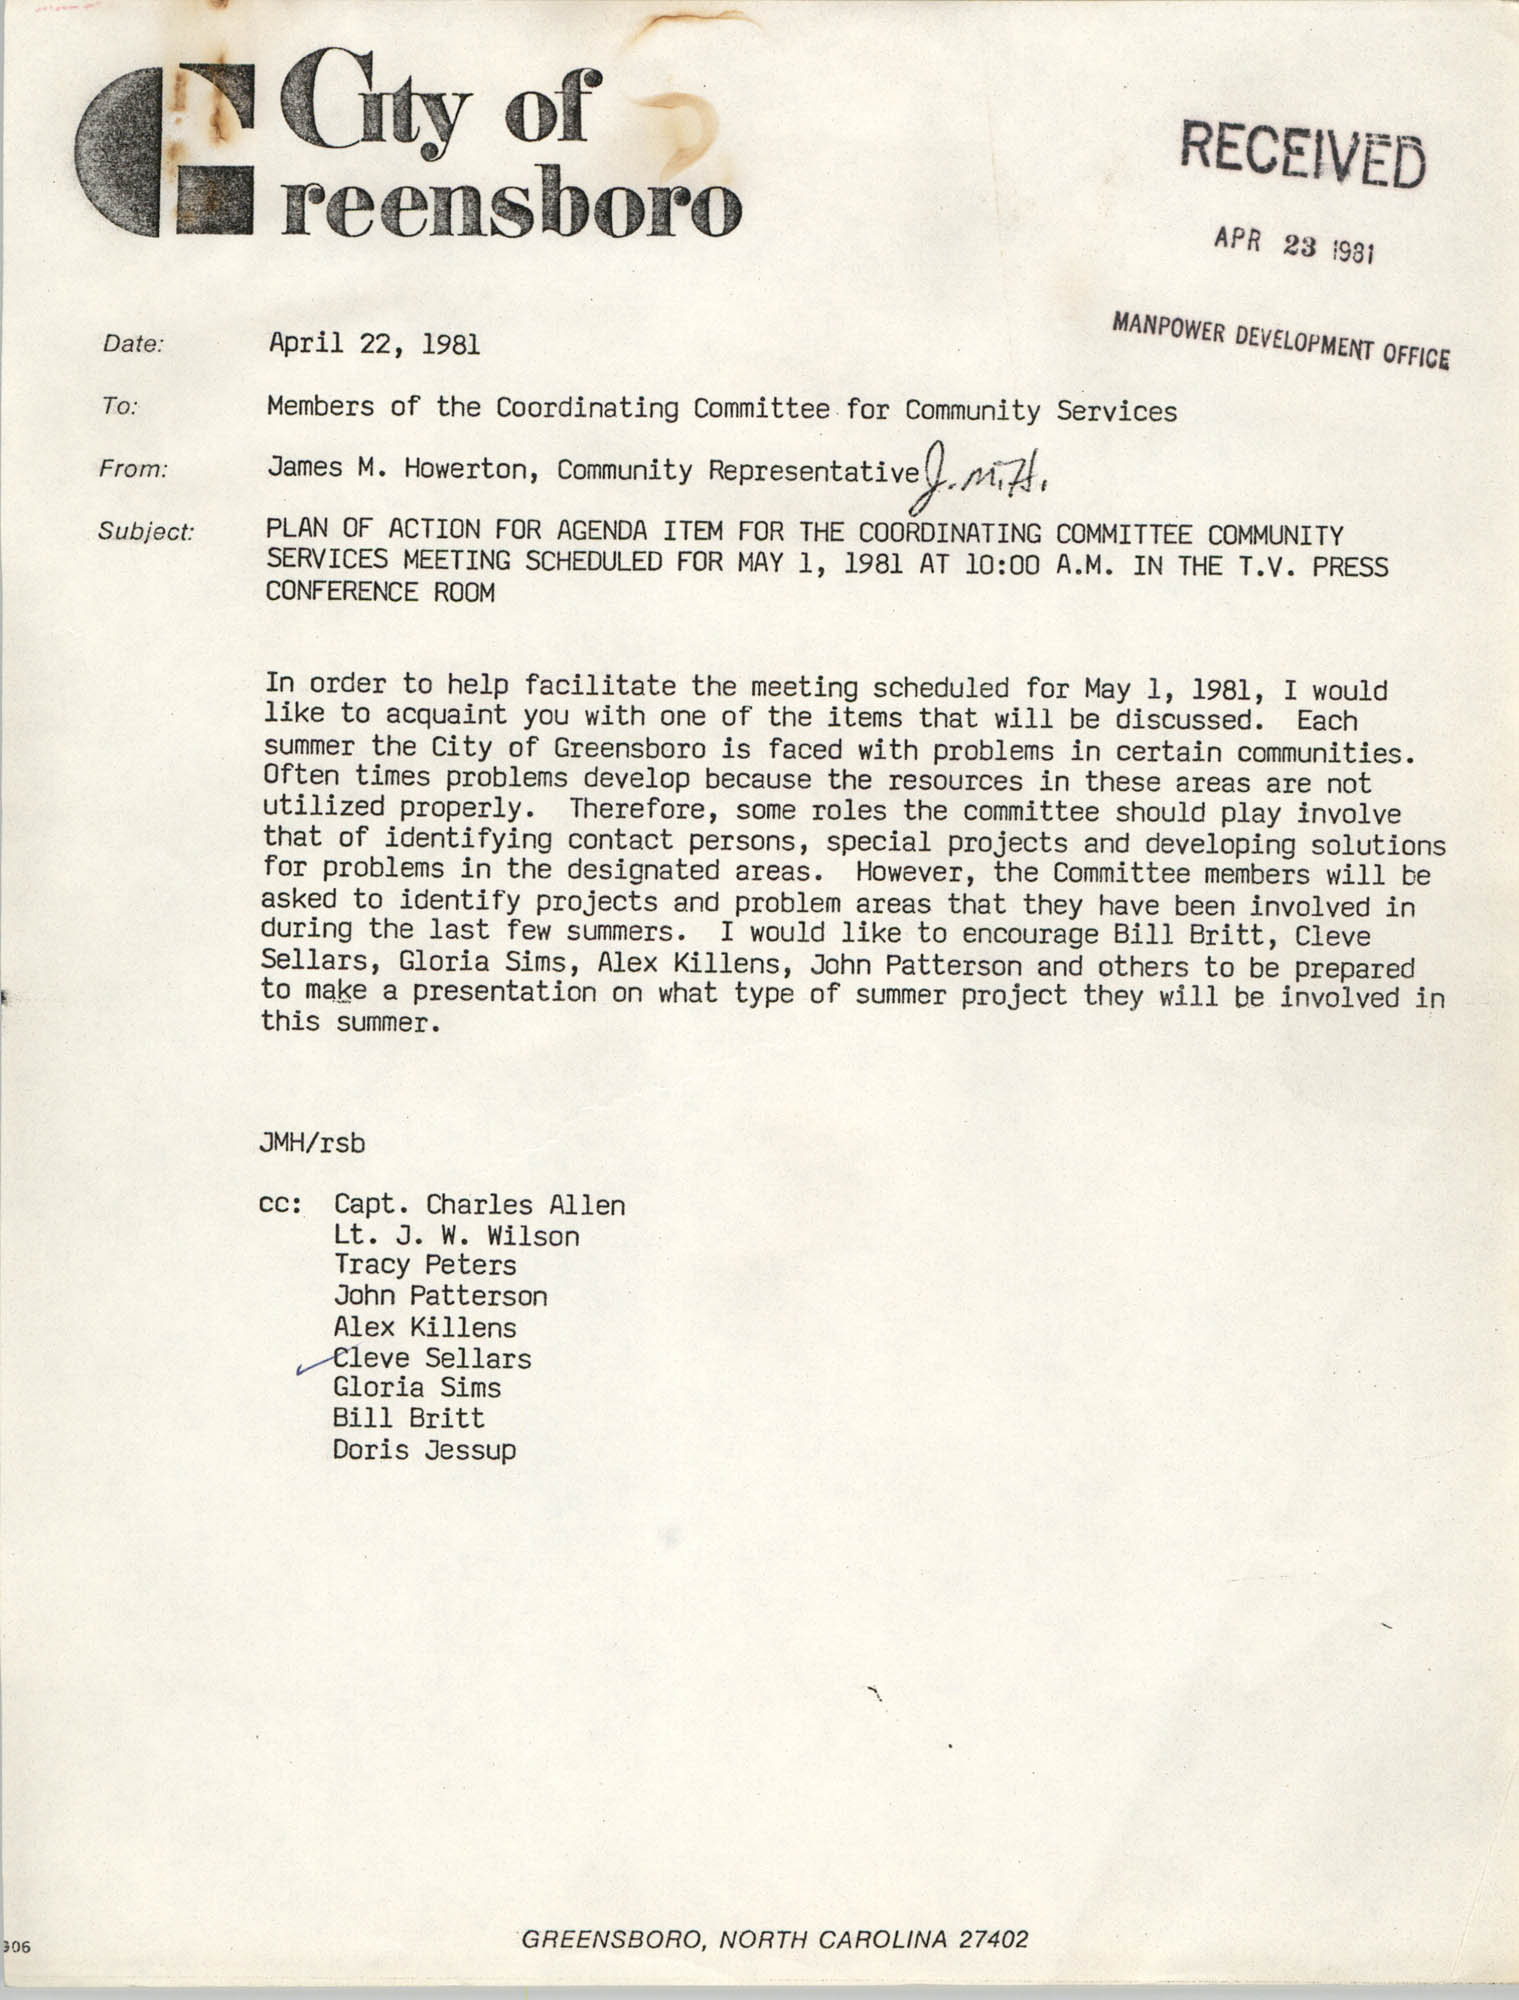 City of Greensboro Memorandum, April 22, 1981